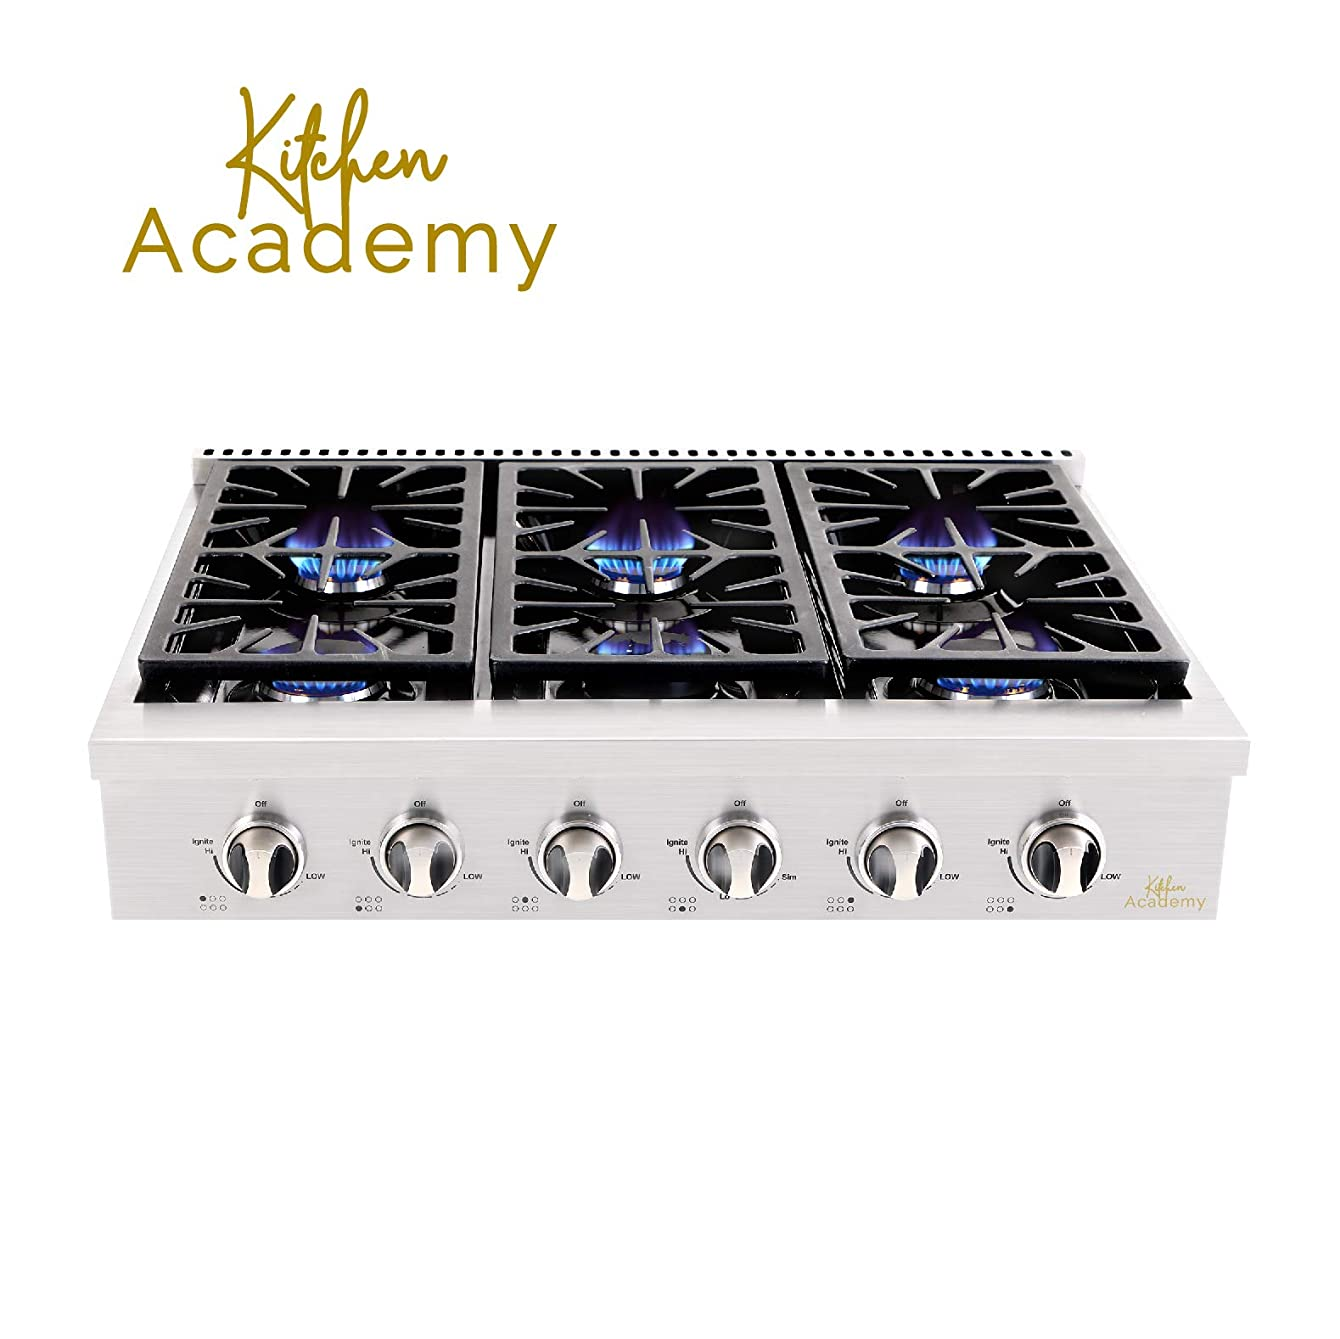 Kitchen Academy Professional 36'' Stainless Steel Gas Rangetop Cooktop with 6 Gas Burners